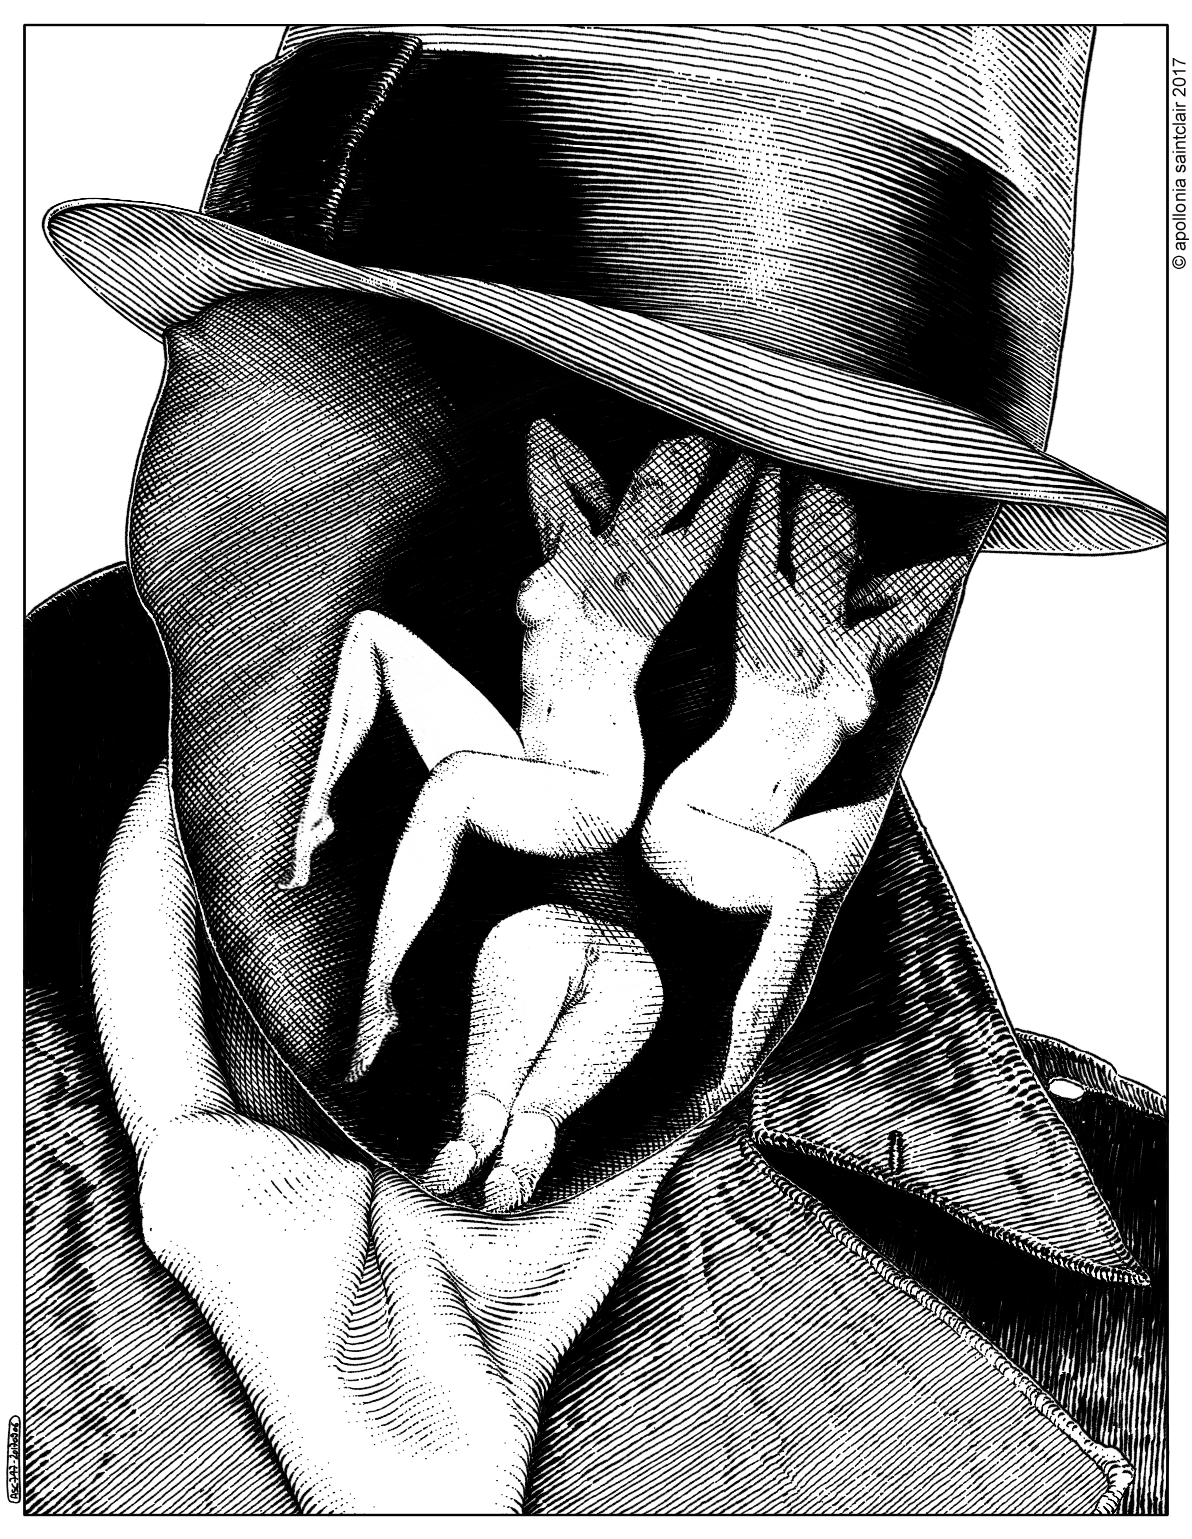 Apollonia Saintclair 747 - 20170906 Le Rorschach (You are what you see)